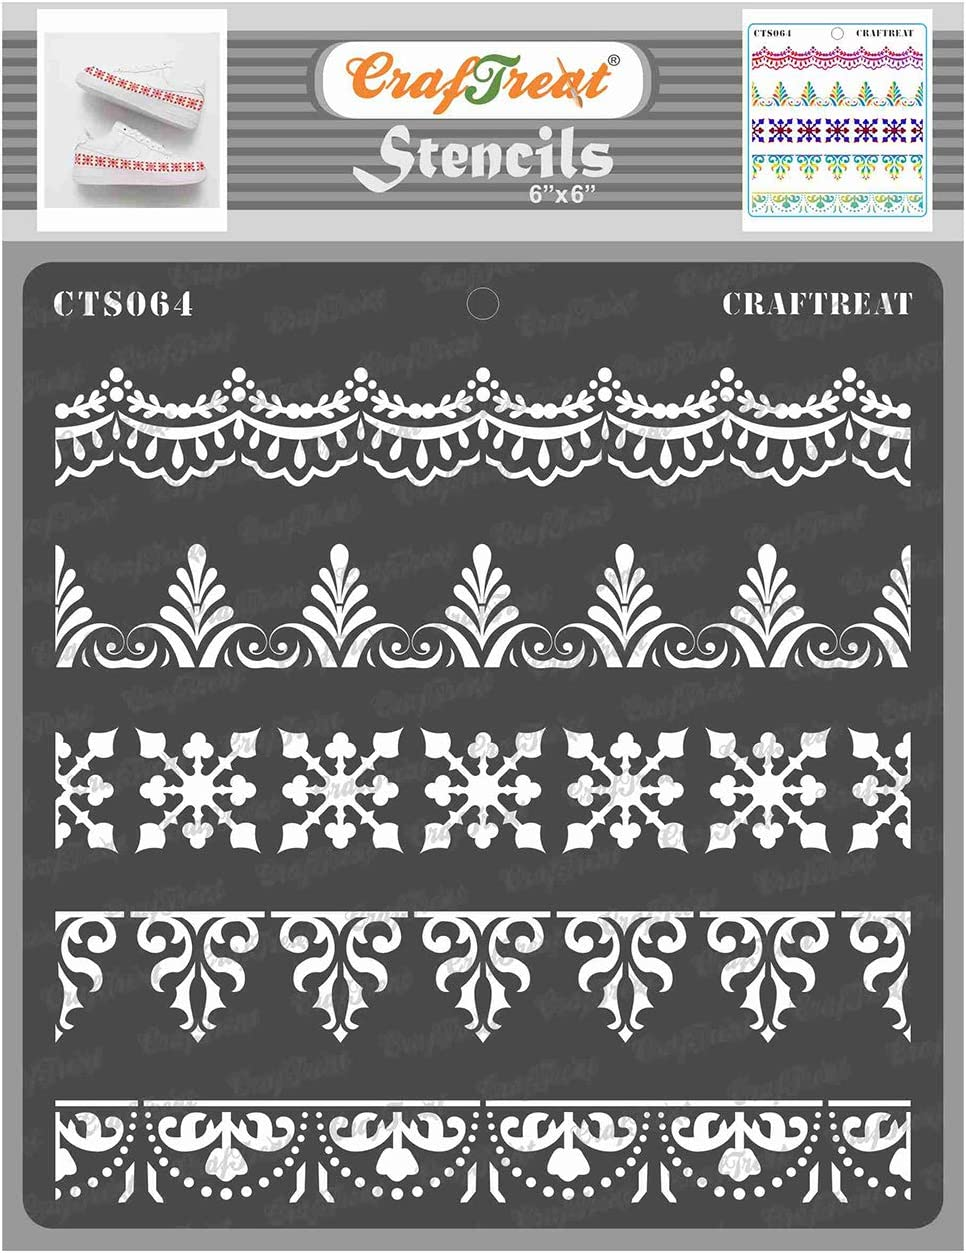 CrafTreat Ornate Border Stencils for Painting on Wood, Canvas, Paper, Fabric, Floor, Wall and Tile - Ornate Borders - 6x6 Inches Each - Reusable DIY Art and Craft Stencils